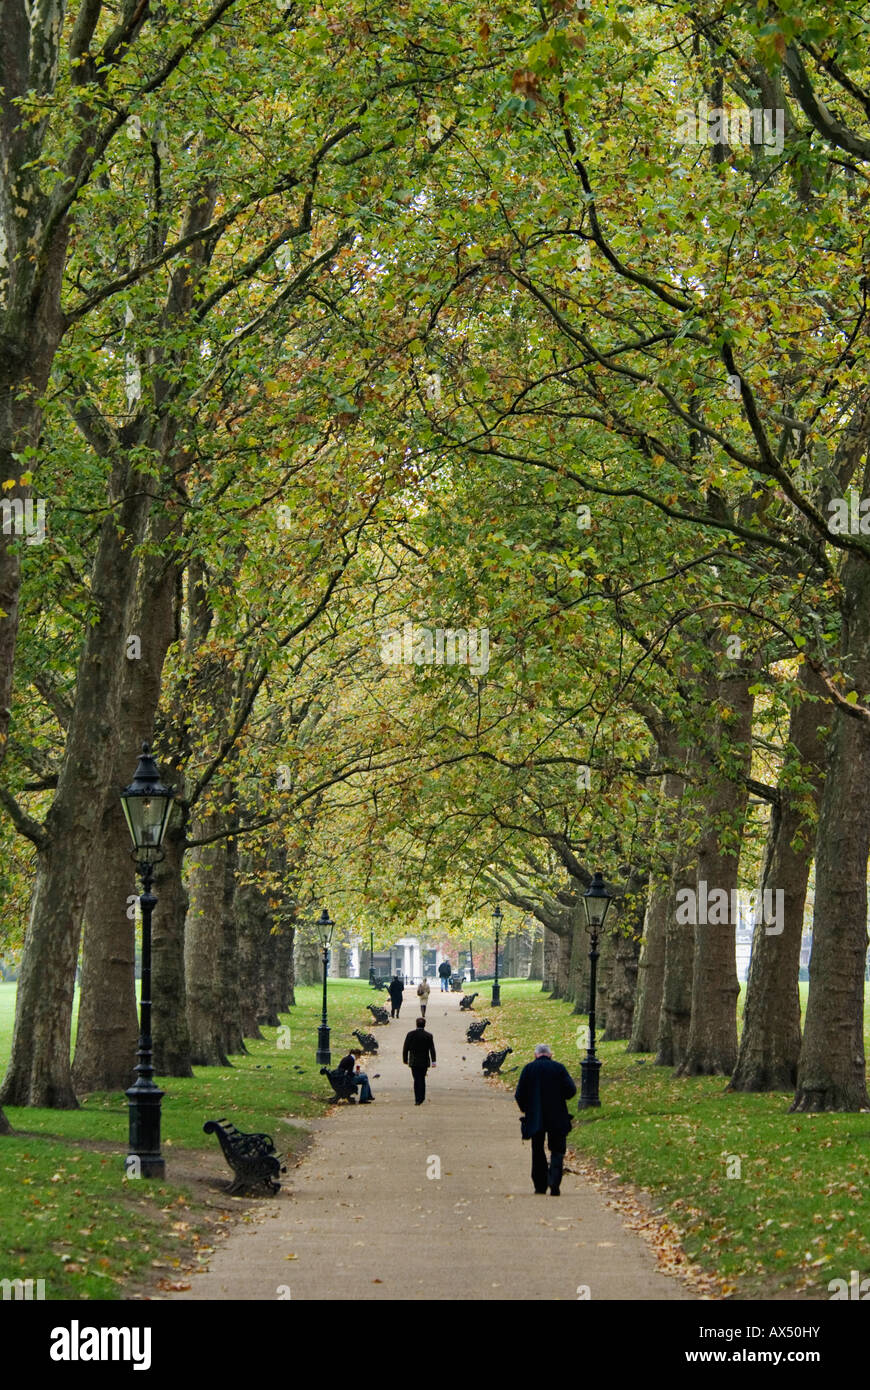 People Walking Along Tree Lined Path Through The Green Park London England - Stock Image